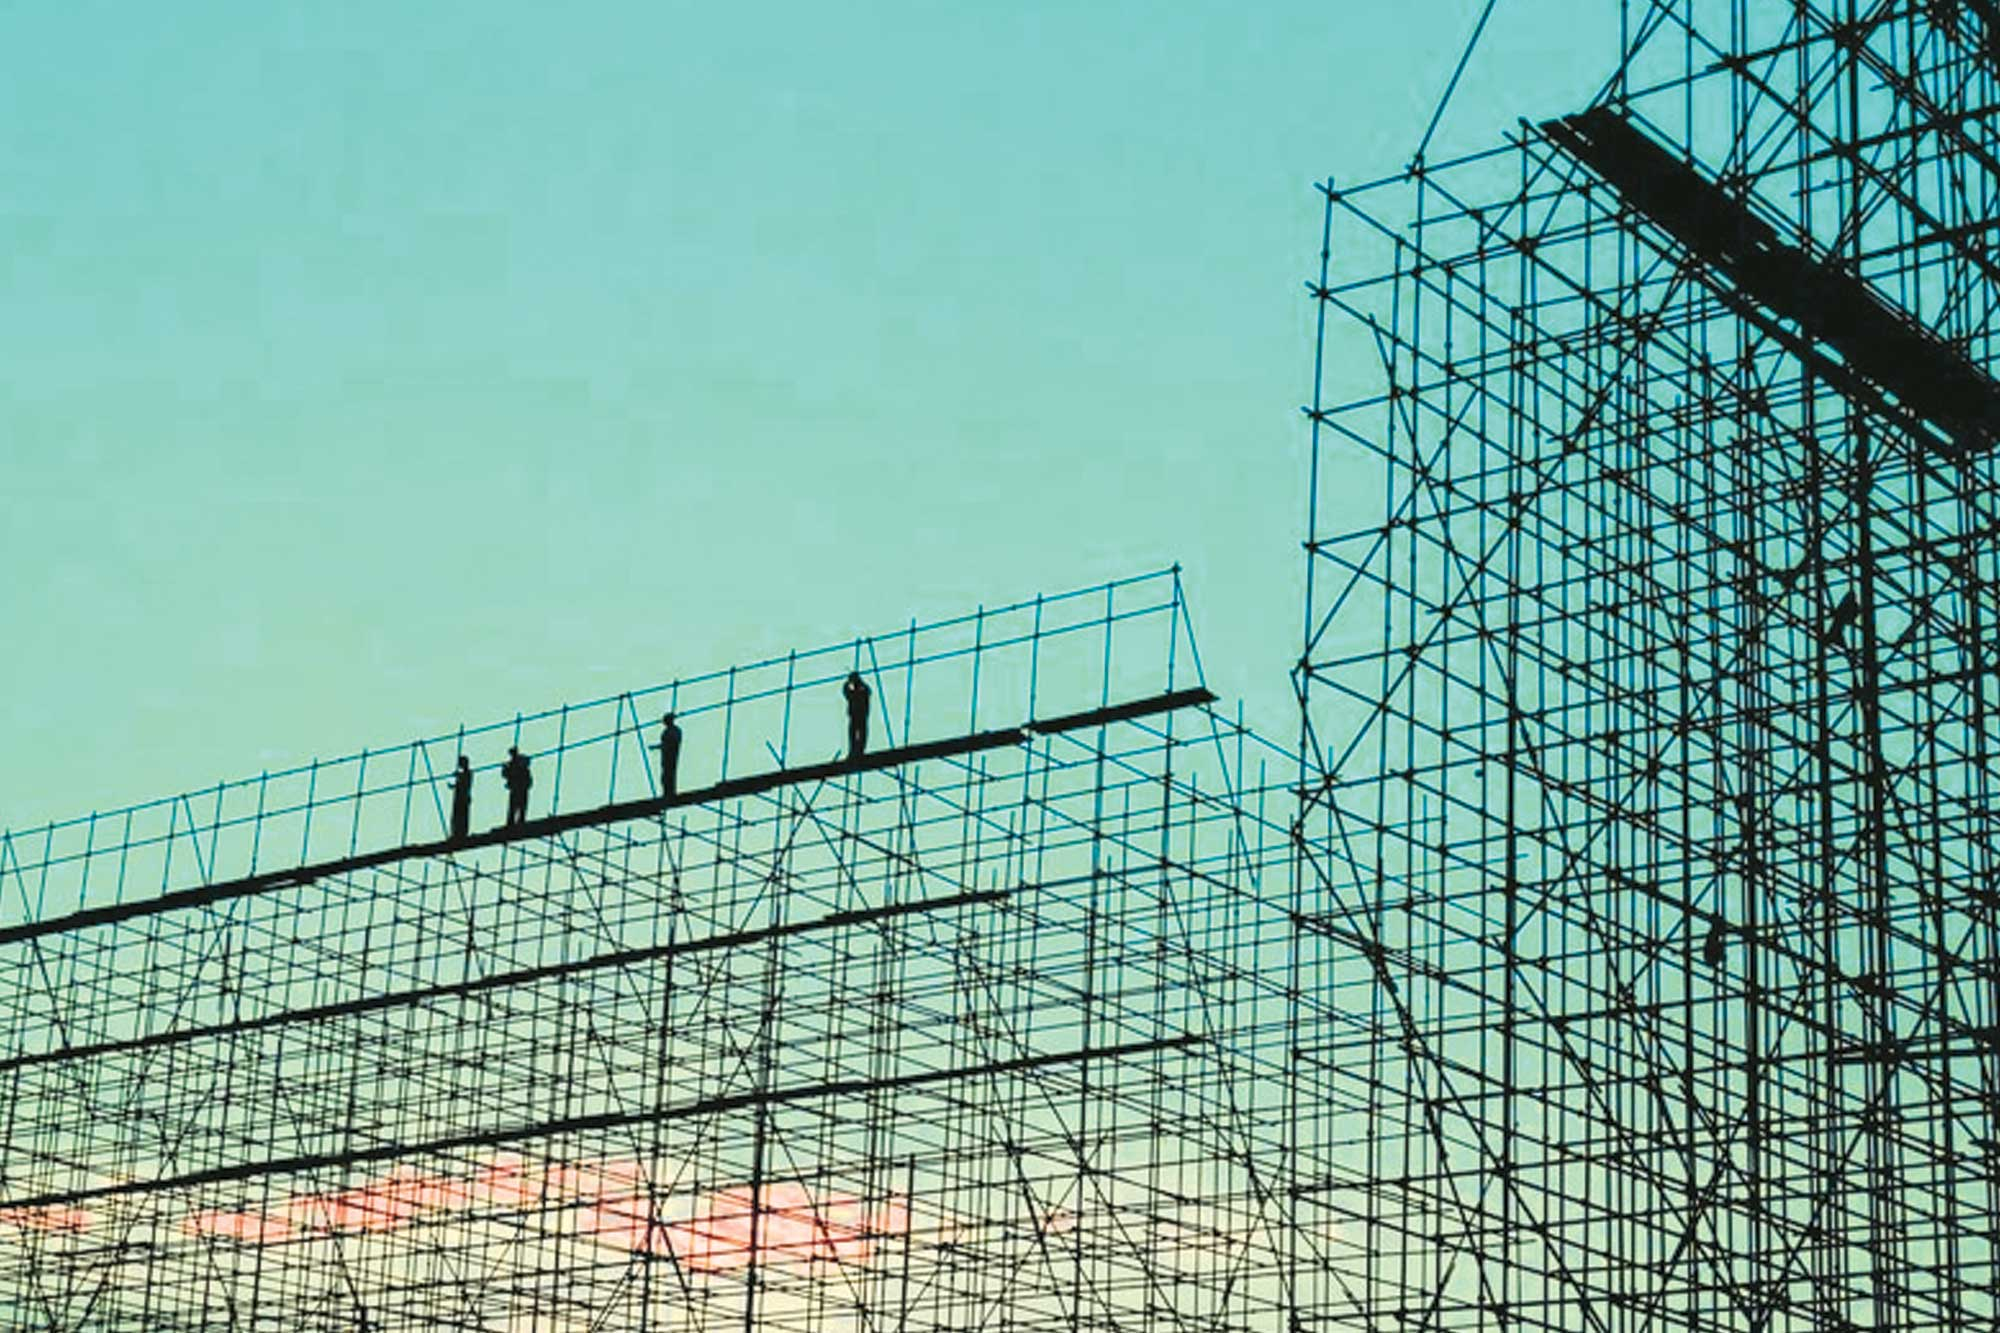 Anish Scaffolding helps building high-rise